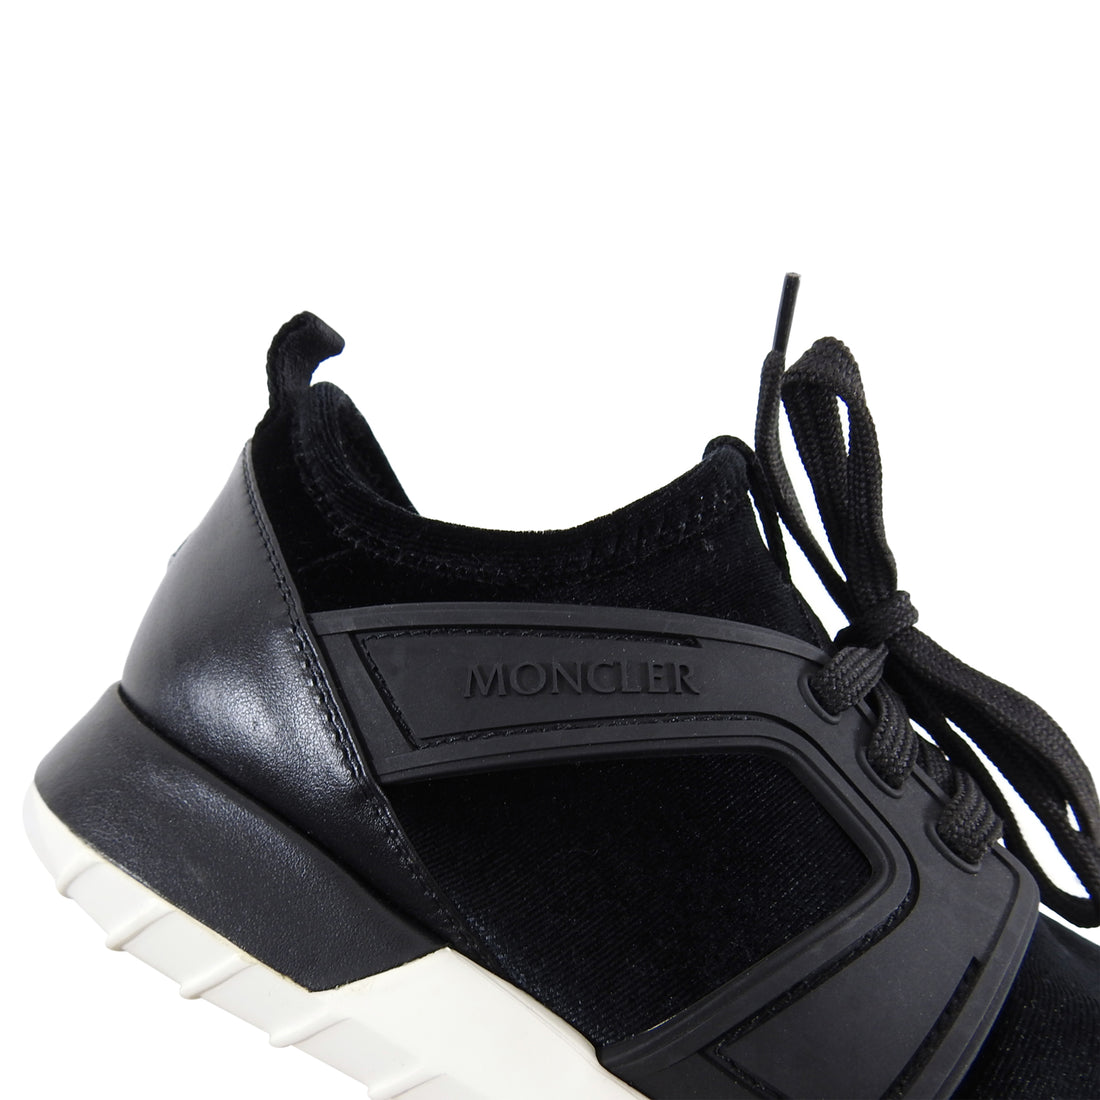 Moncler Meline Black Stretch Velvet and Leather Running Shoes - 6.5